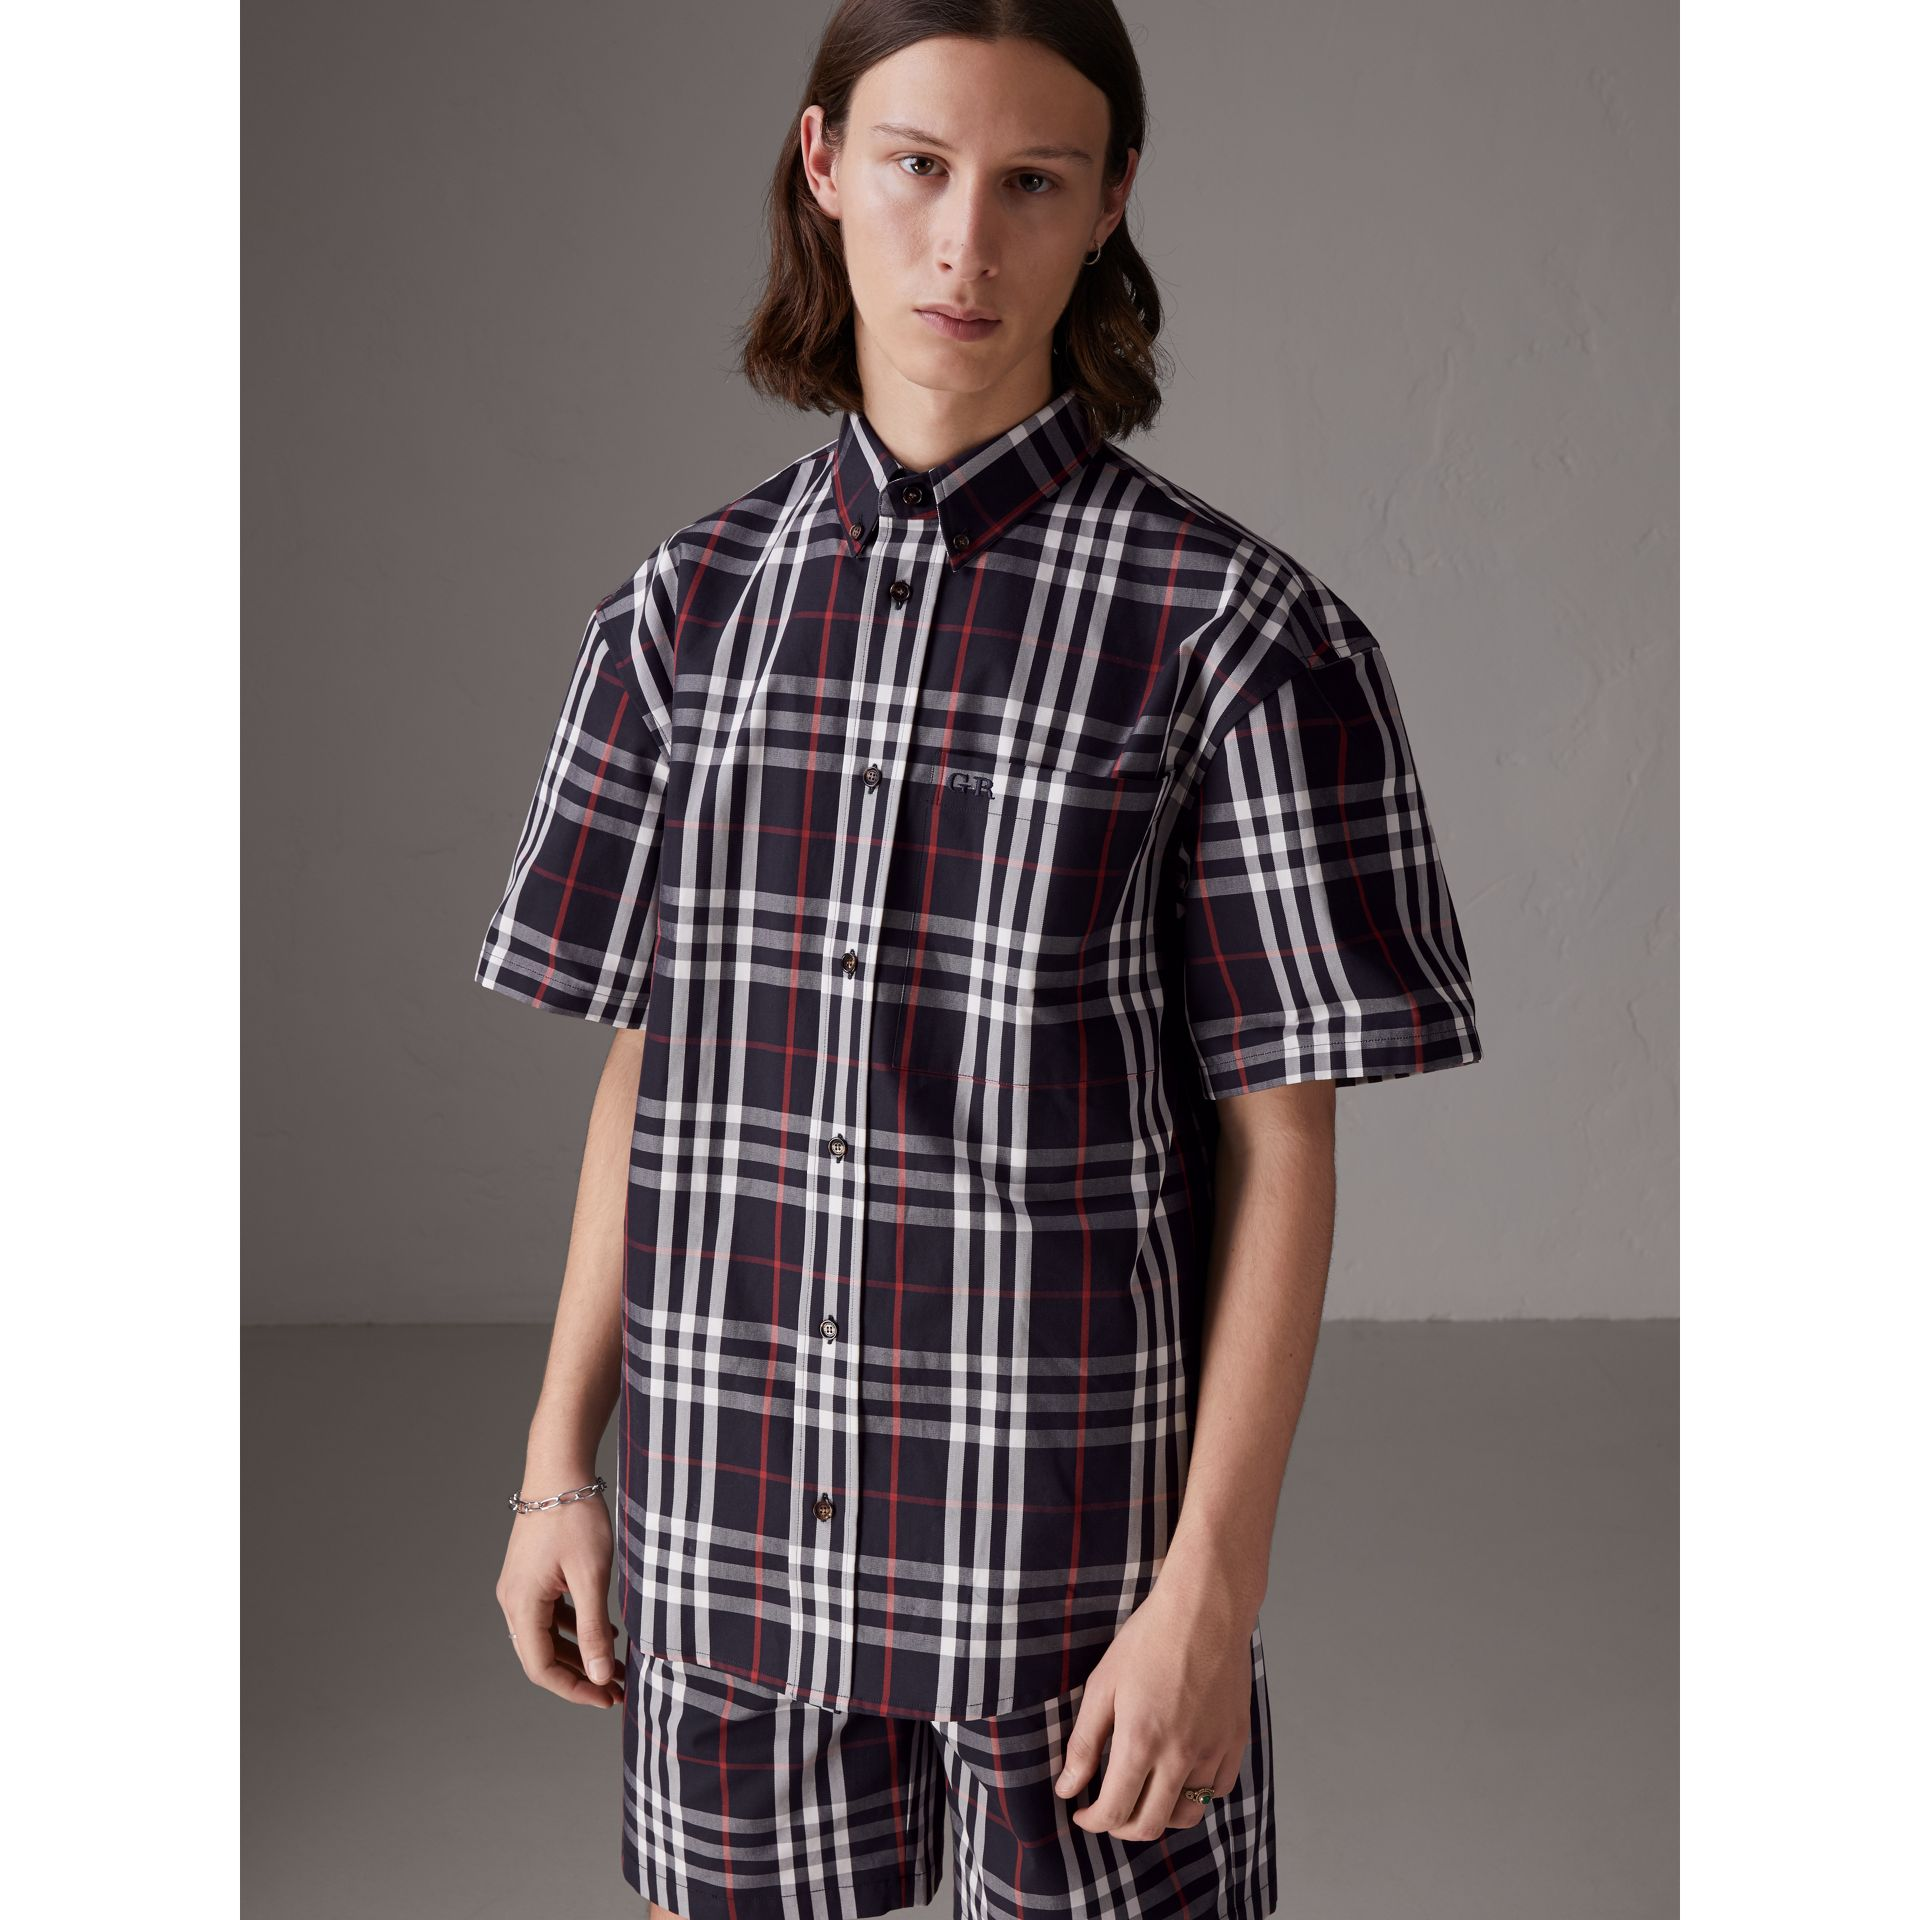 Gosha x Burberry Short-sleeve Check Shirt in Navy - Men | Burberry United Kingdom - gallery image 0